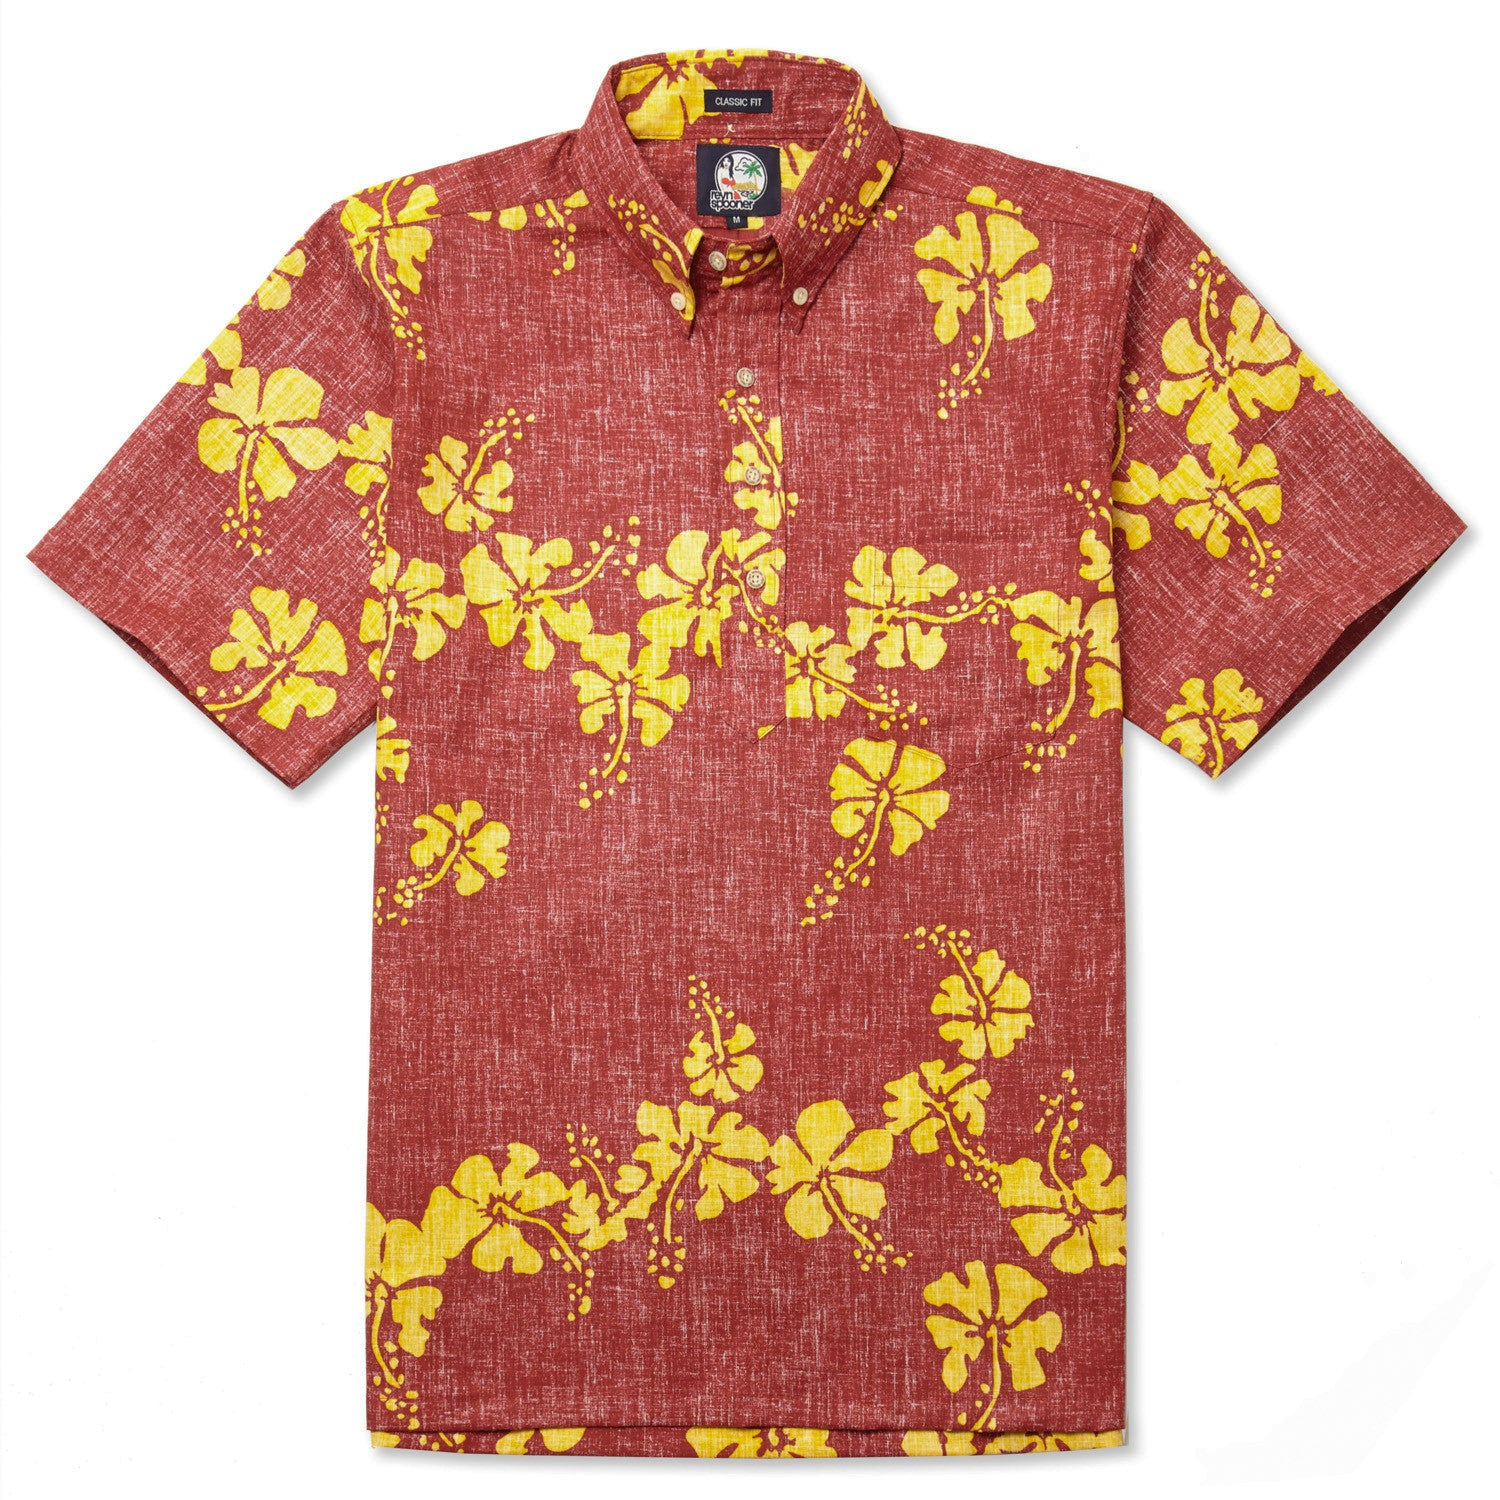 50Th State Flower Classic Fit Short Sleeve Pullover Shirt, Cotton/Polyester, For Men, 2XL, Crimson Red, From Reyn Spooner